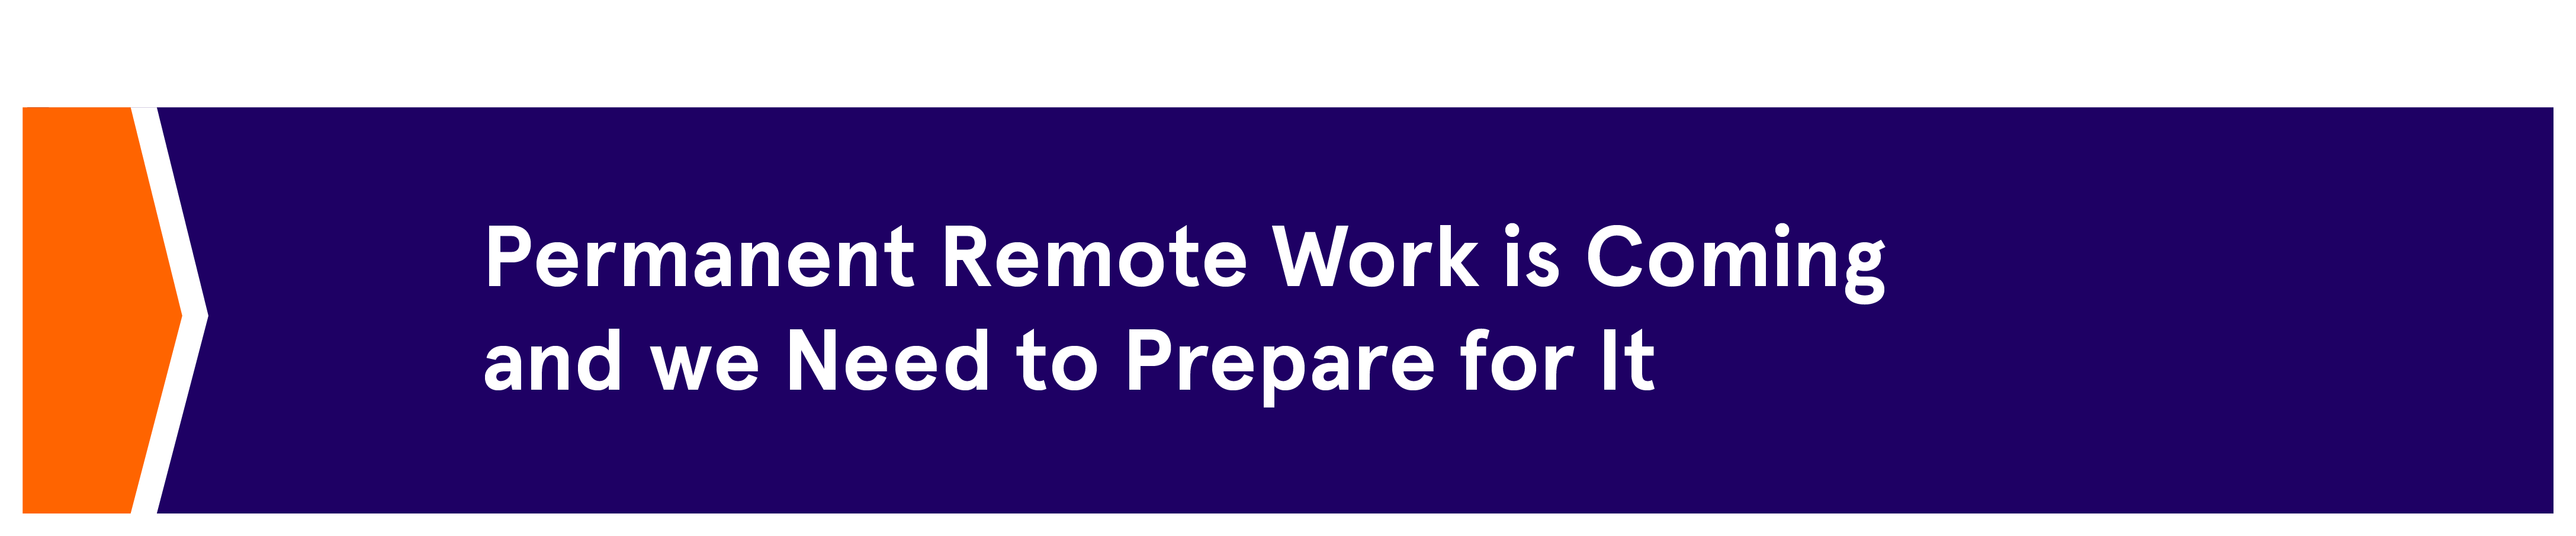 Just Capital Blog Headers__Remote Work is Coming